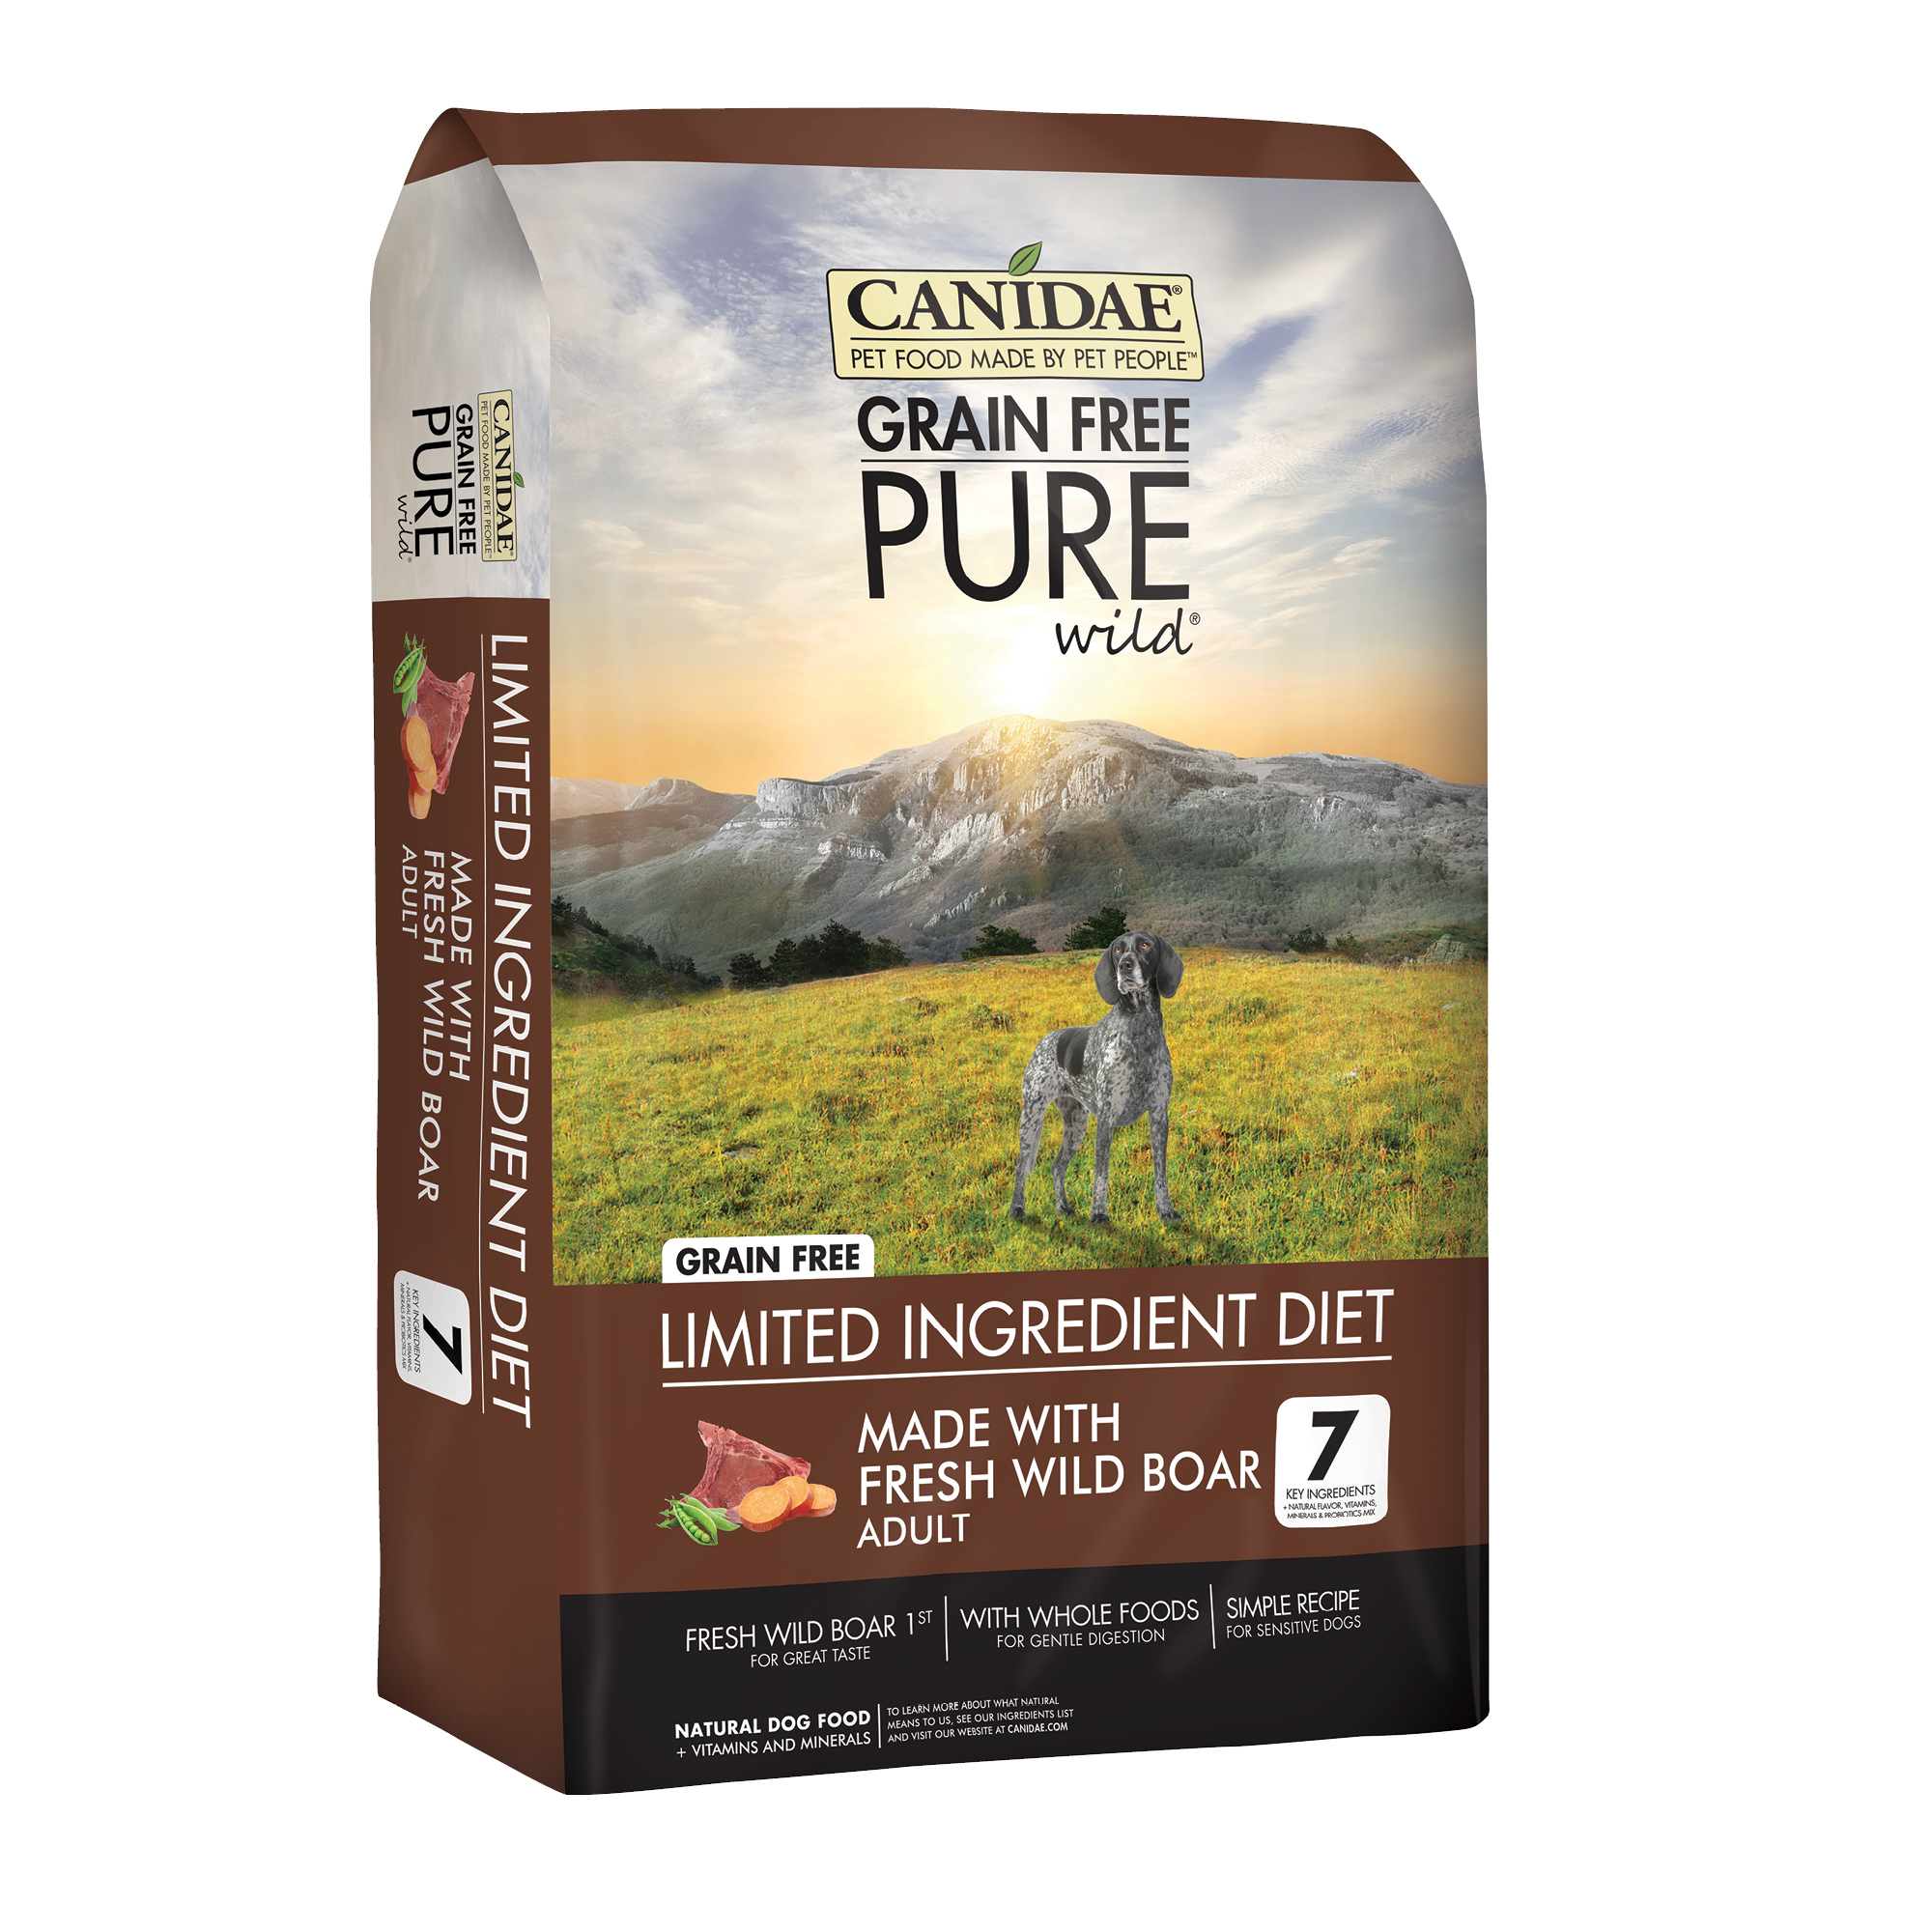 Canidae Grain Free Pure Wild Dog